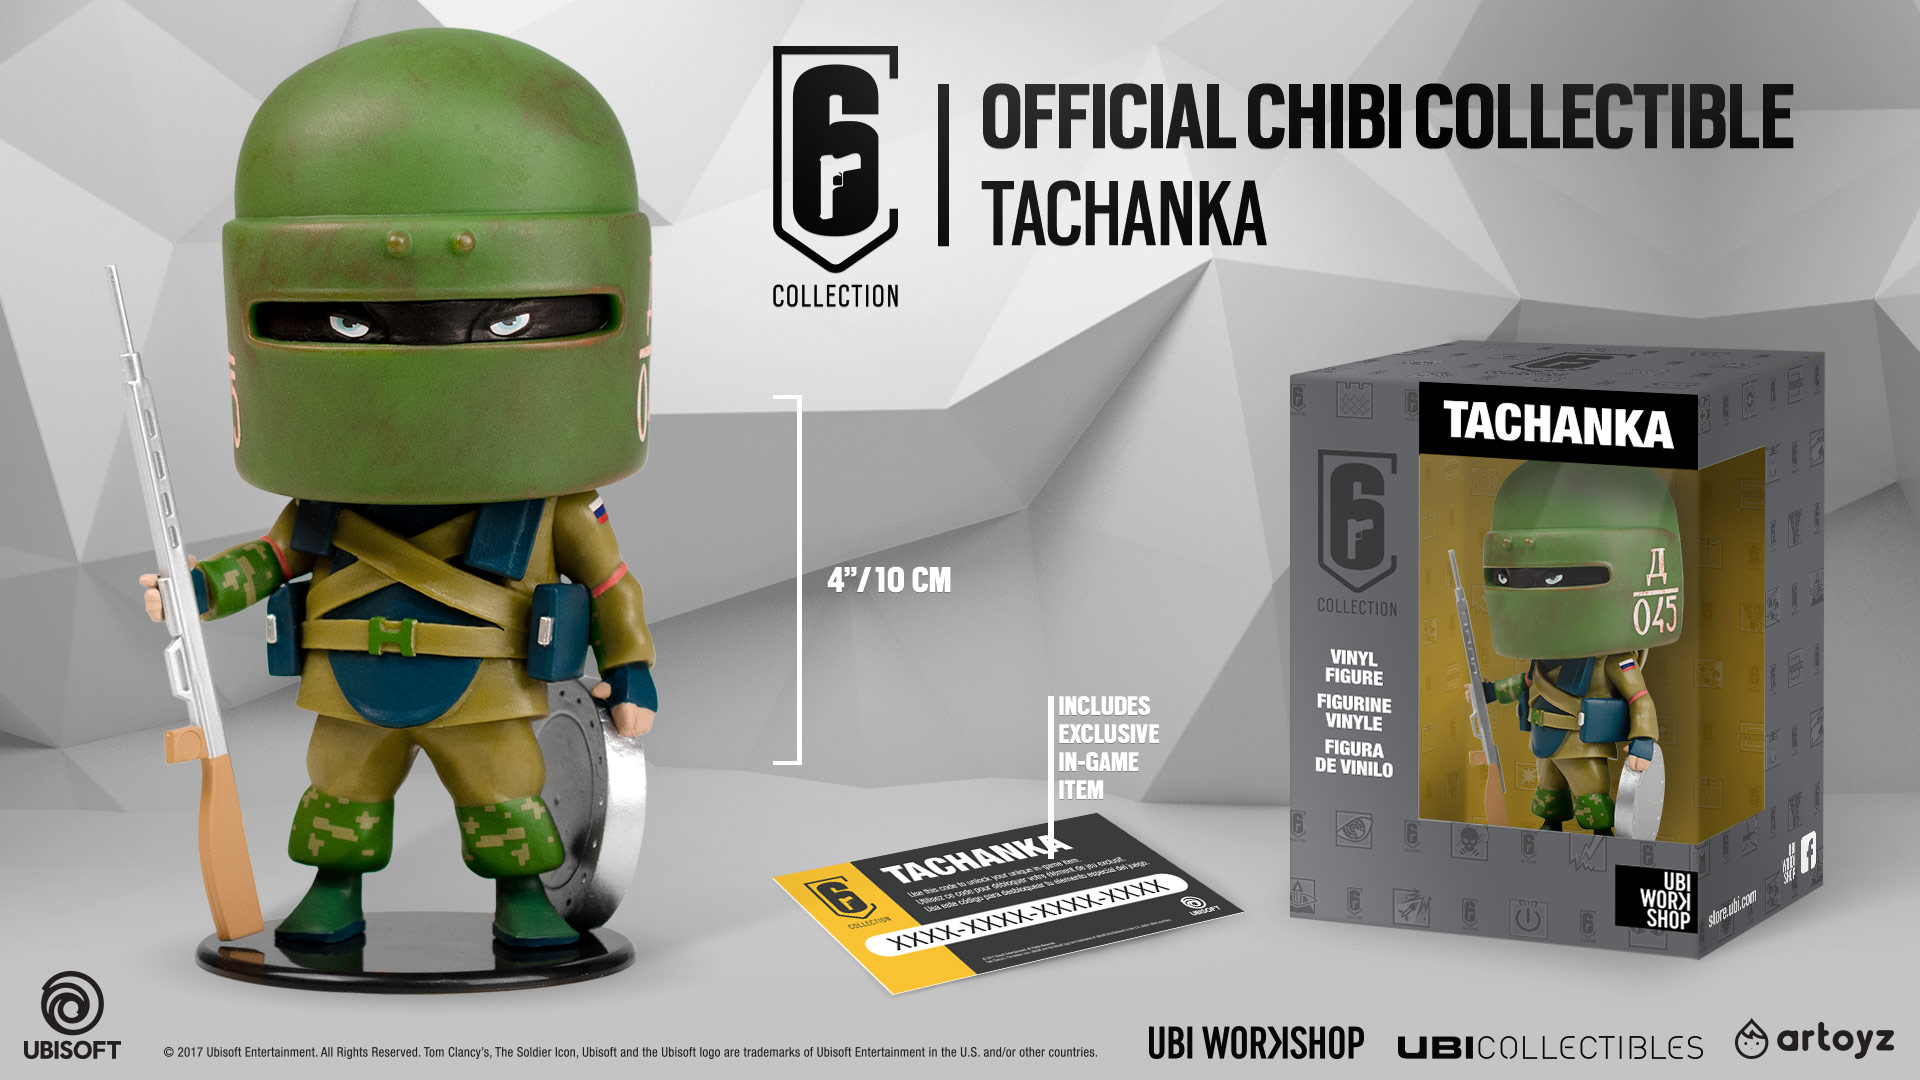 ubisoft six collection  Six Collection Chibi Figurines Available For Preorder at Ubi Workshop